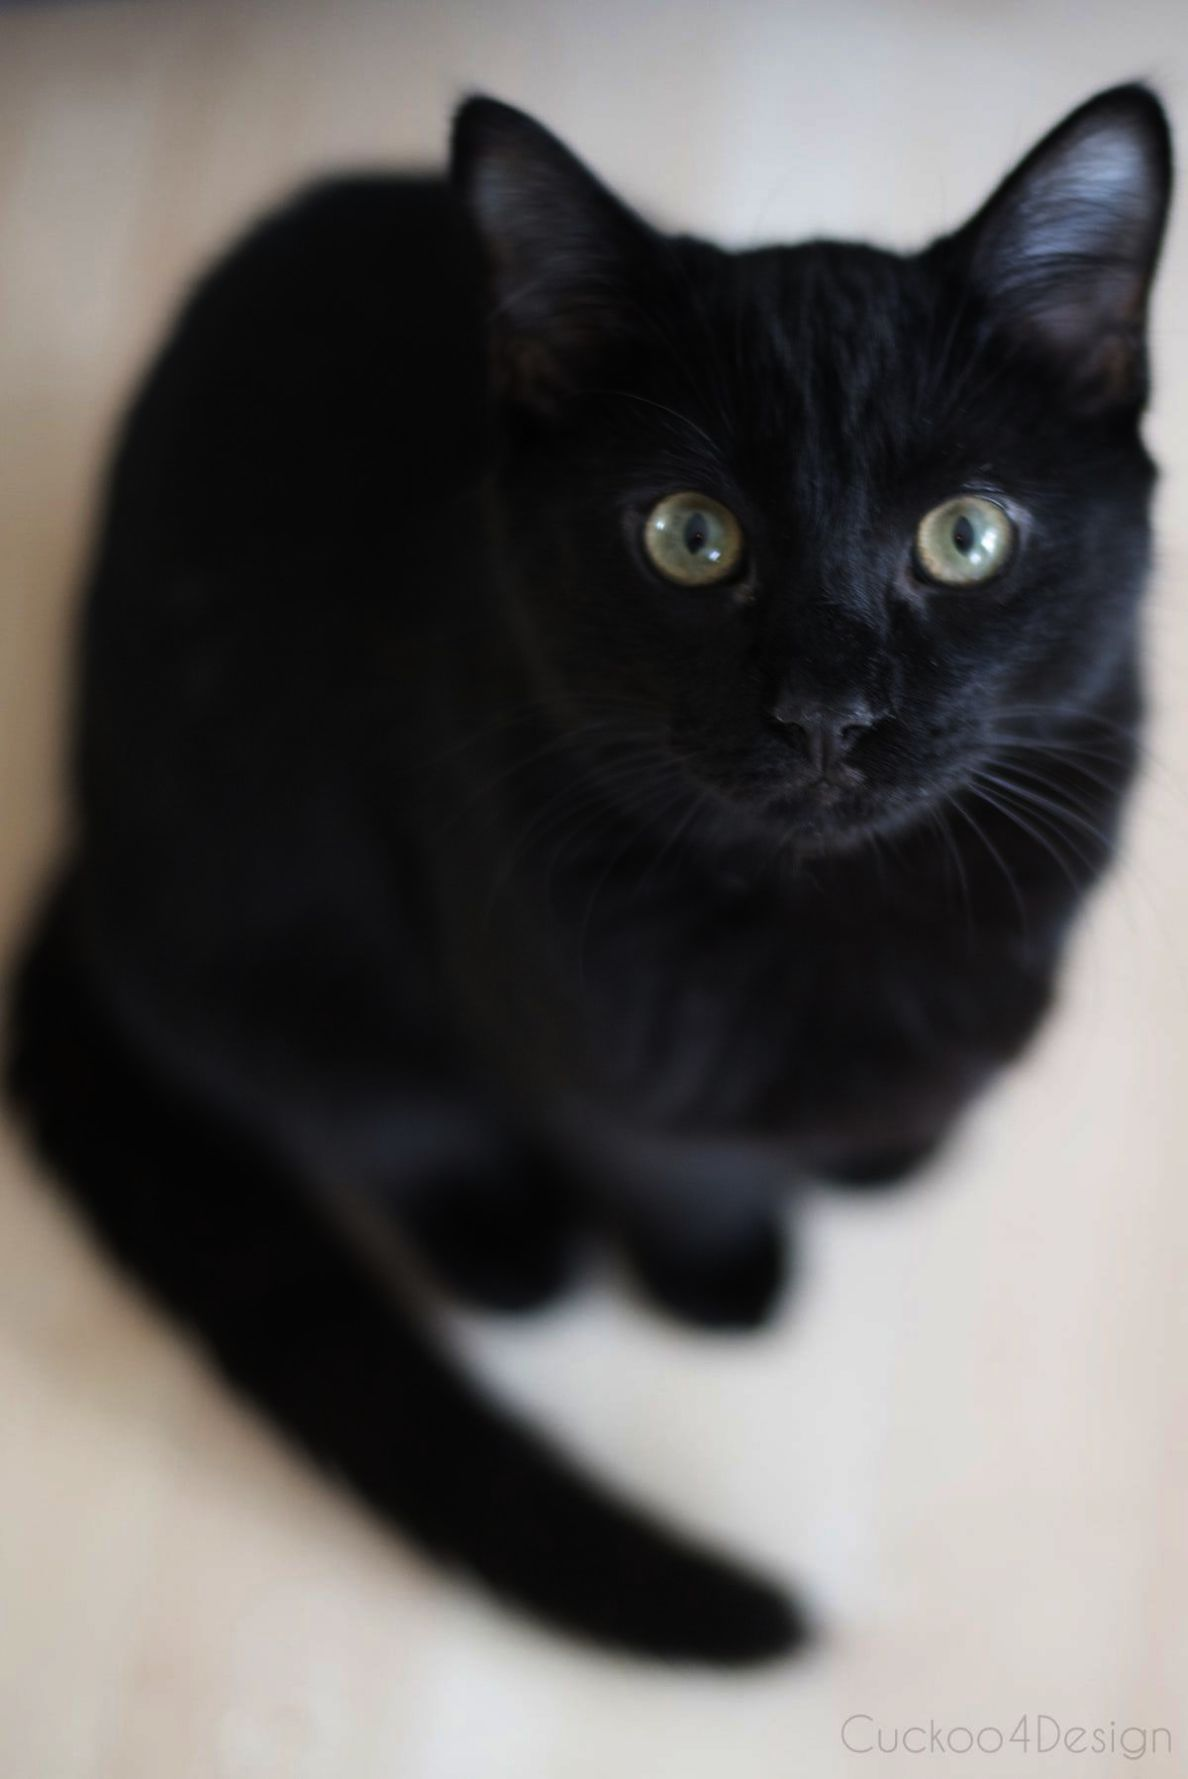 Cute Cat Names Pinterest Rather Cute Cat Girl Pictures Such Cute Animals In Africa Lot Cute Kittens Names For Male Neither Cute Cat Cats Cute Animals Cute Cats